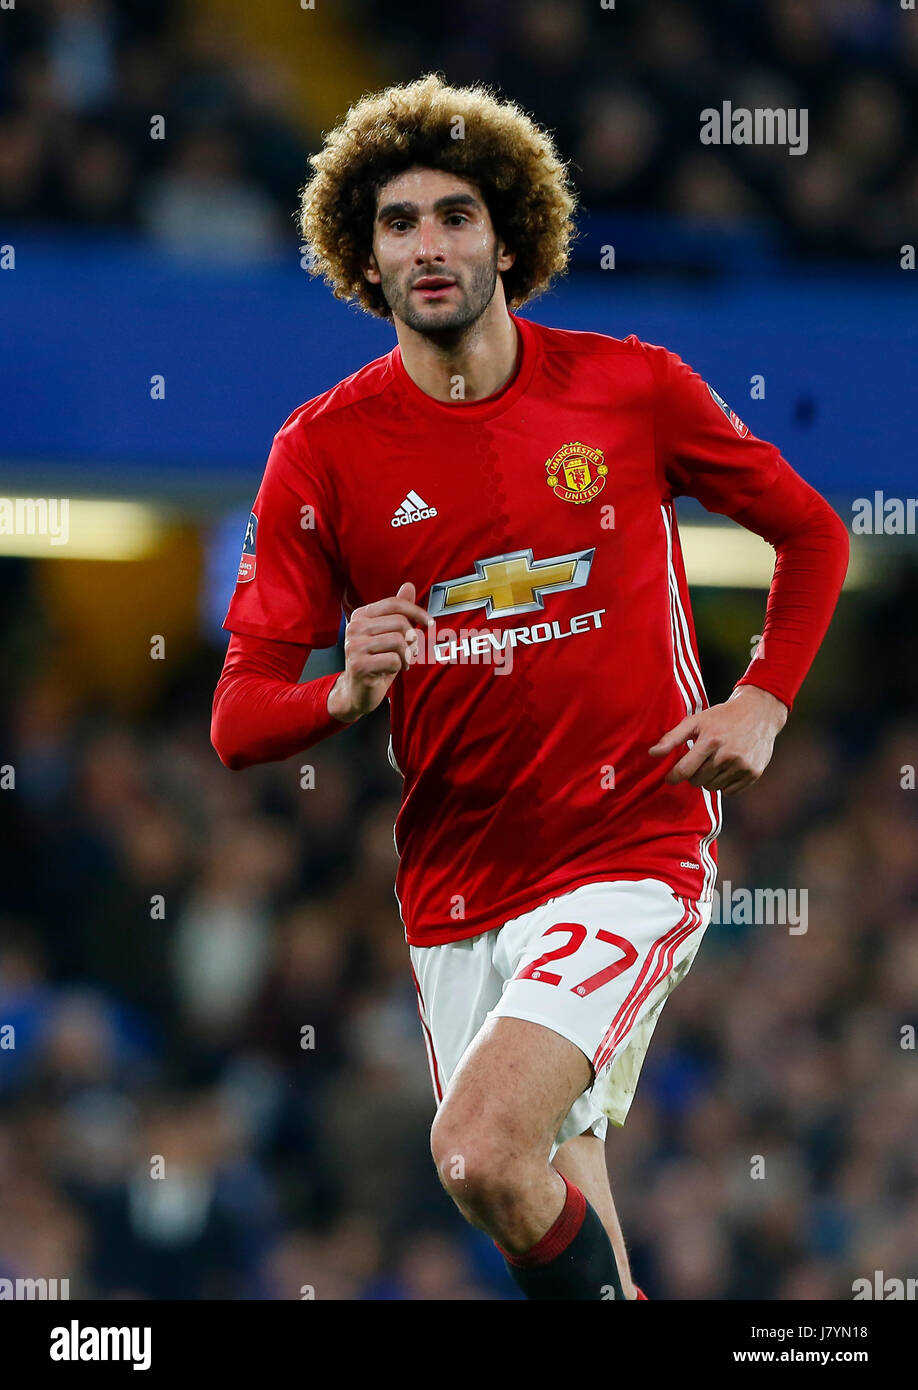 f8efb668788 Marouane Fellaini of Manchester United during the FA Cup match between  Chelsea and Manchester United at Stamford Bridge in London. March 13